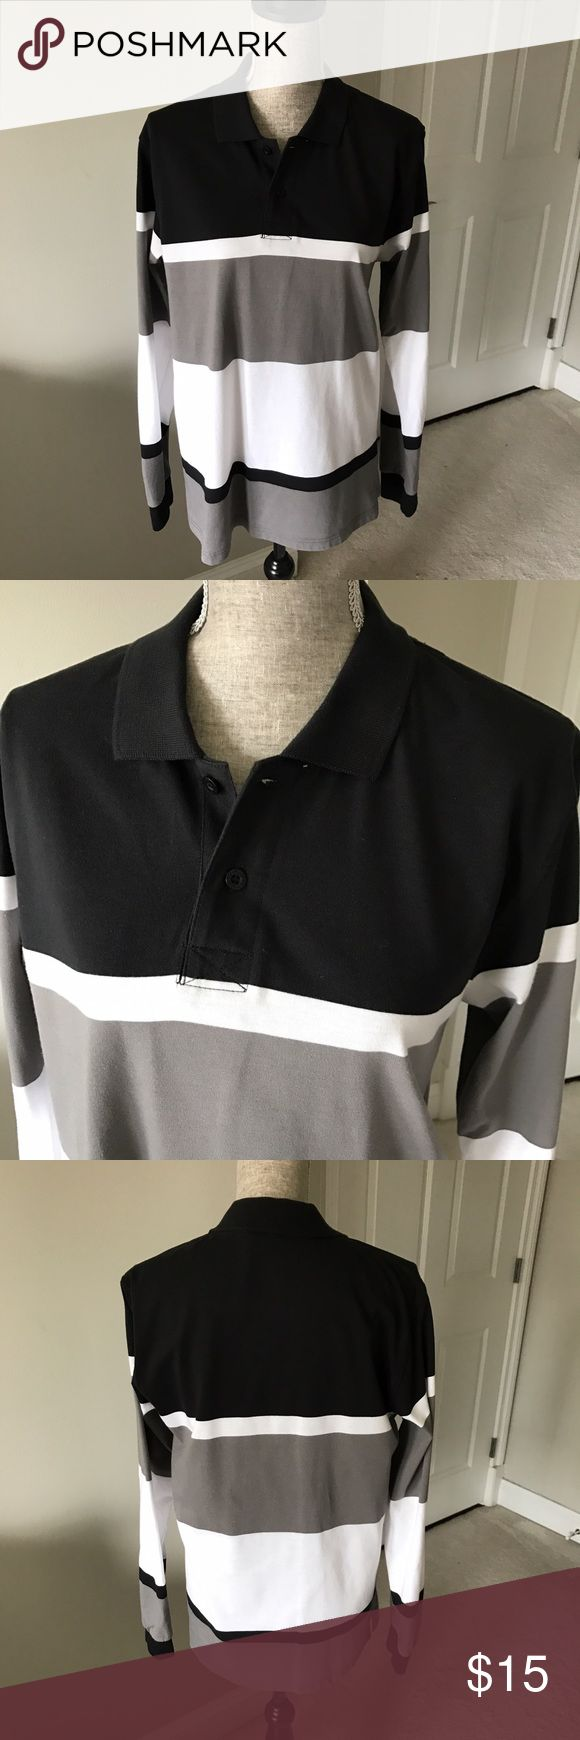 Men long sleeve striped polo shirt Black gray and white striped long sleeve collared shirt. Just dry cleaned. marquis Shirts